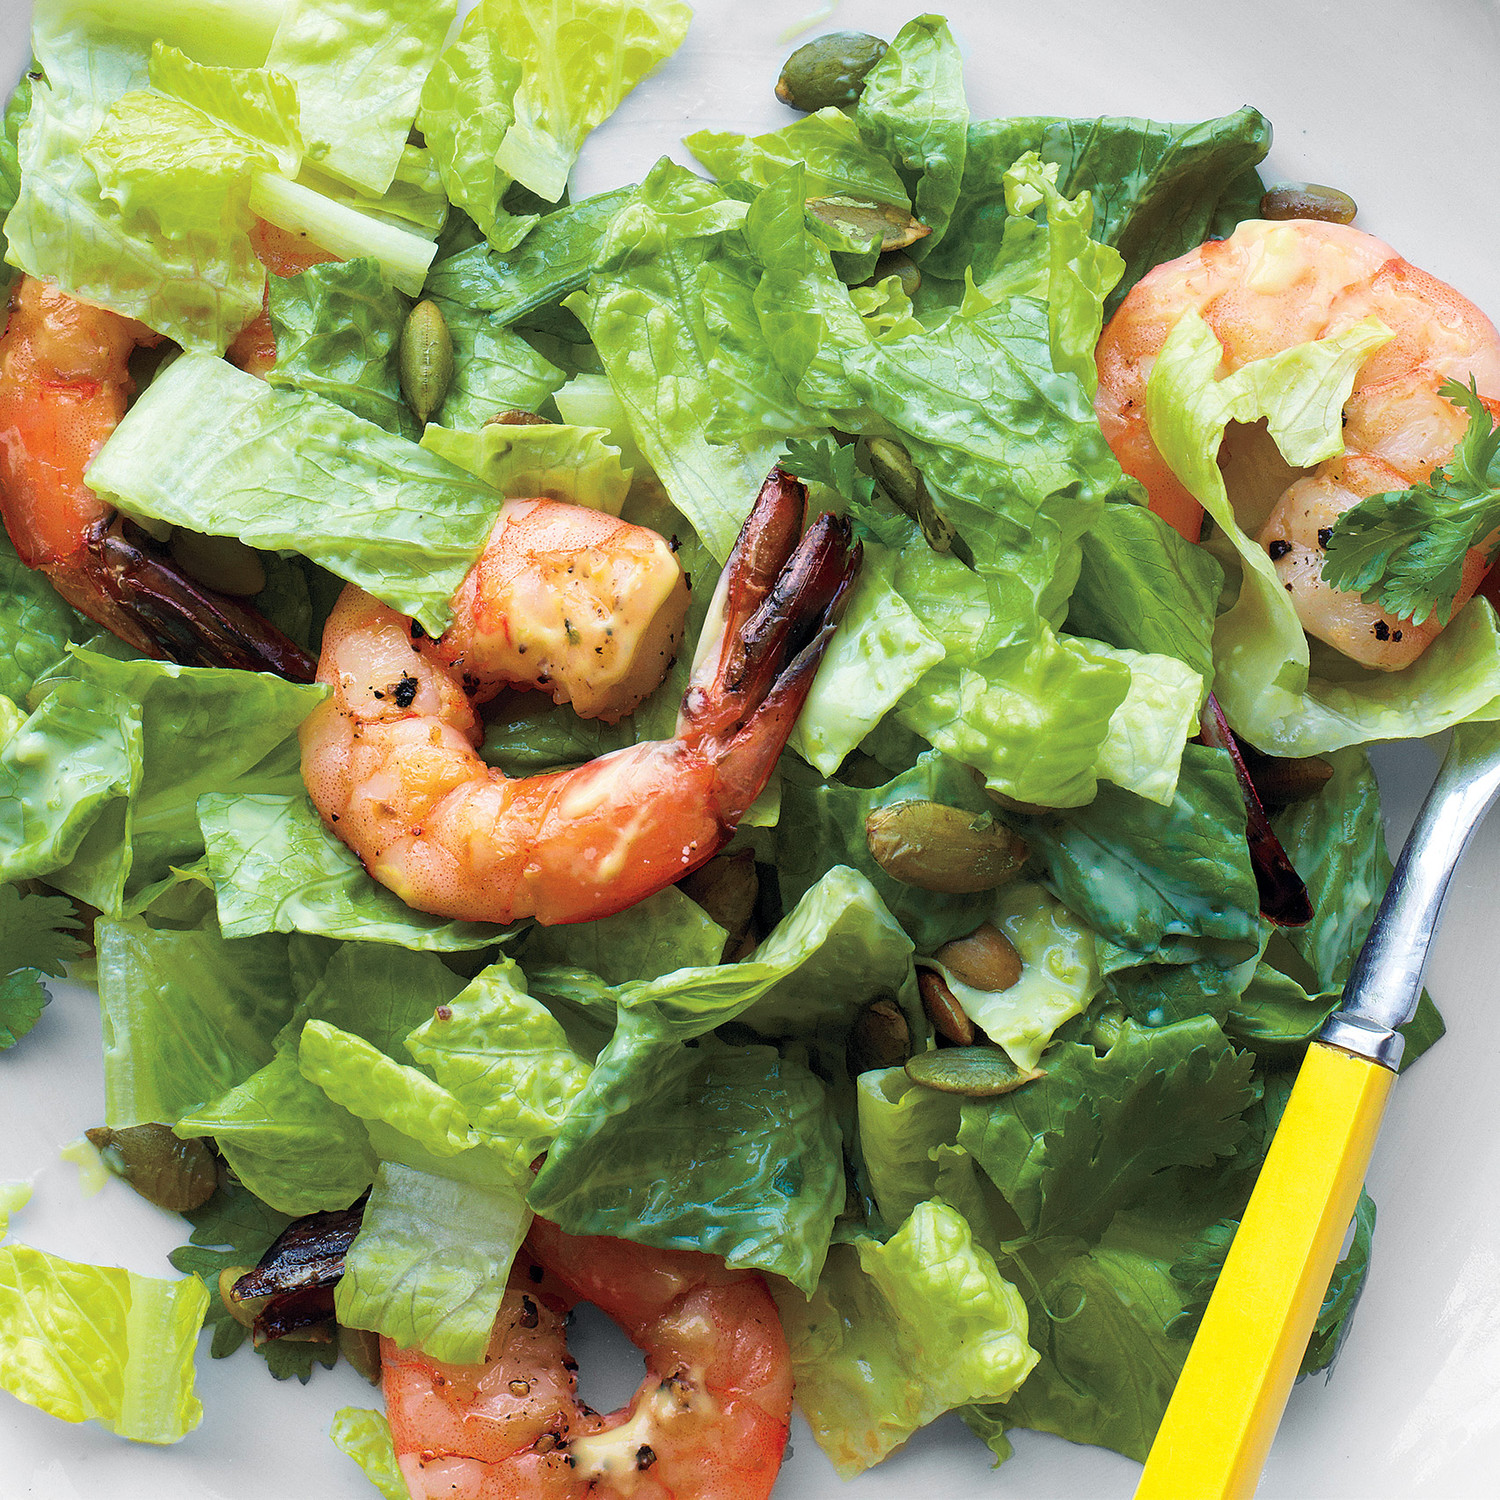 To the festive table: salad with shrimps and pineapple